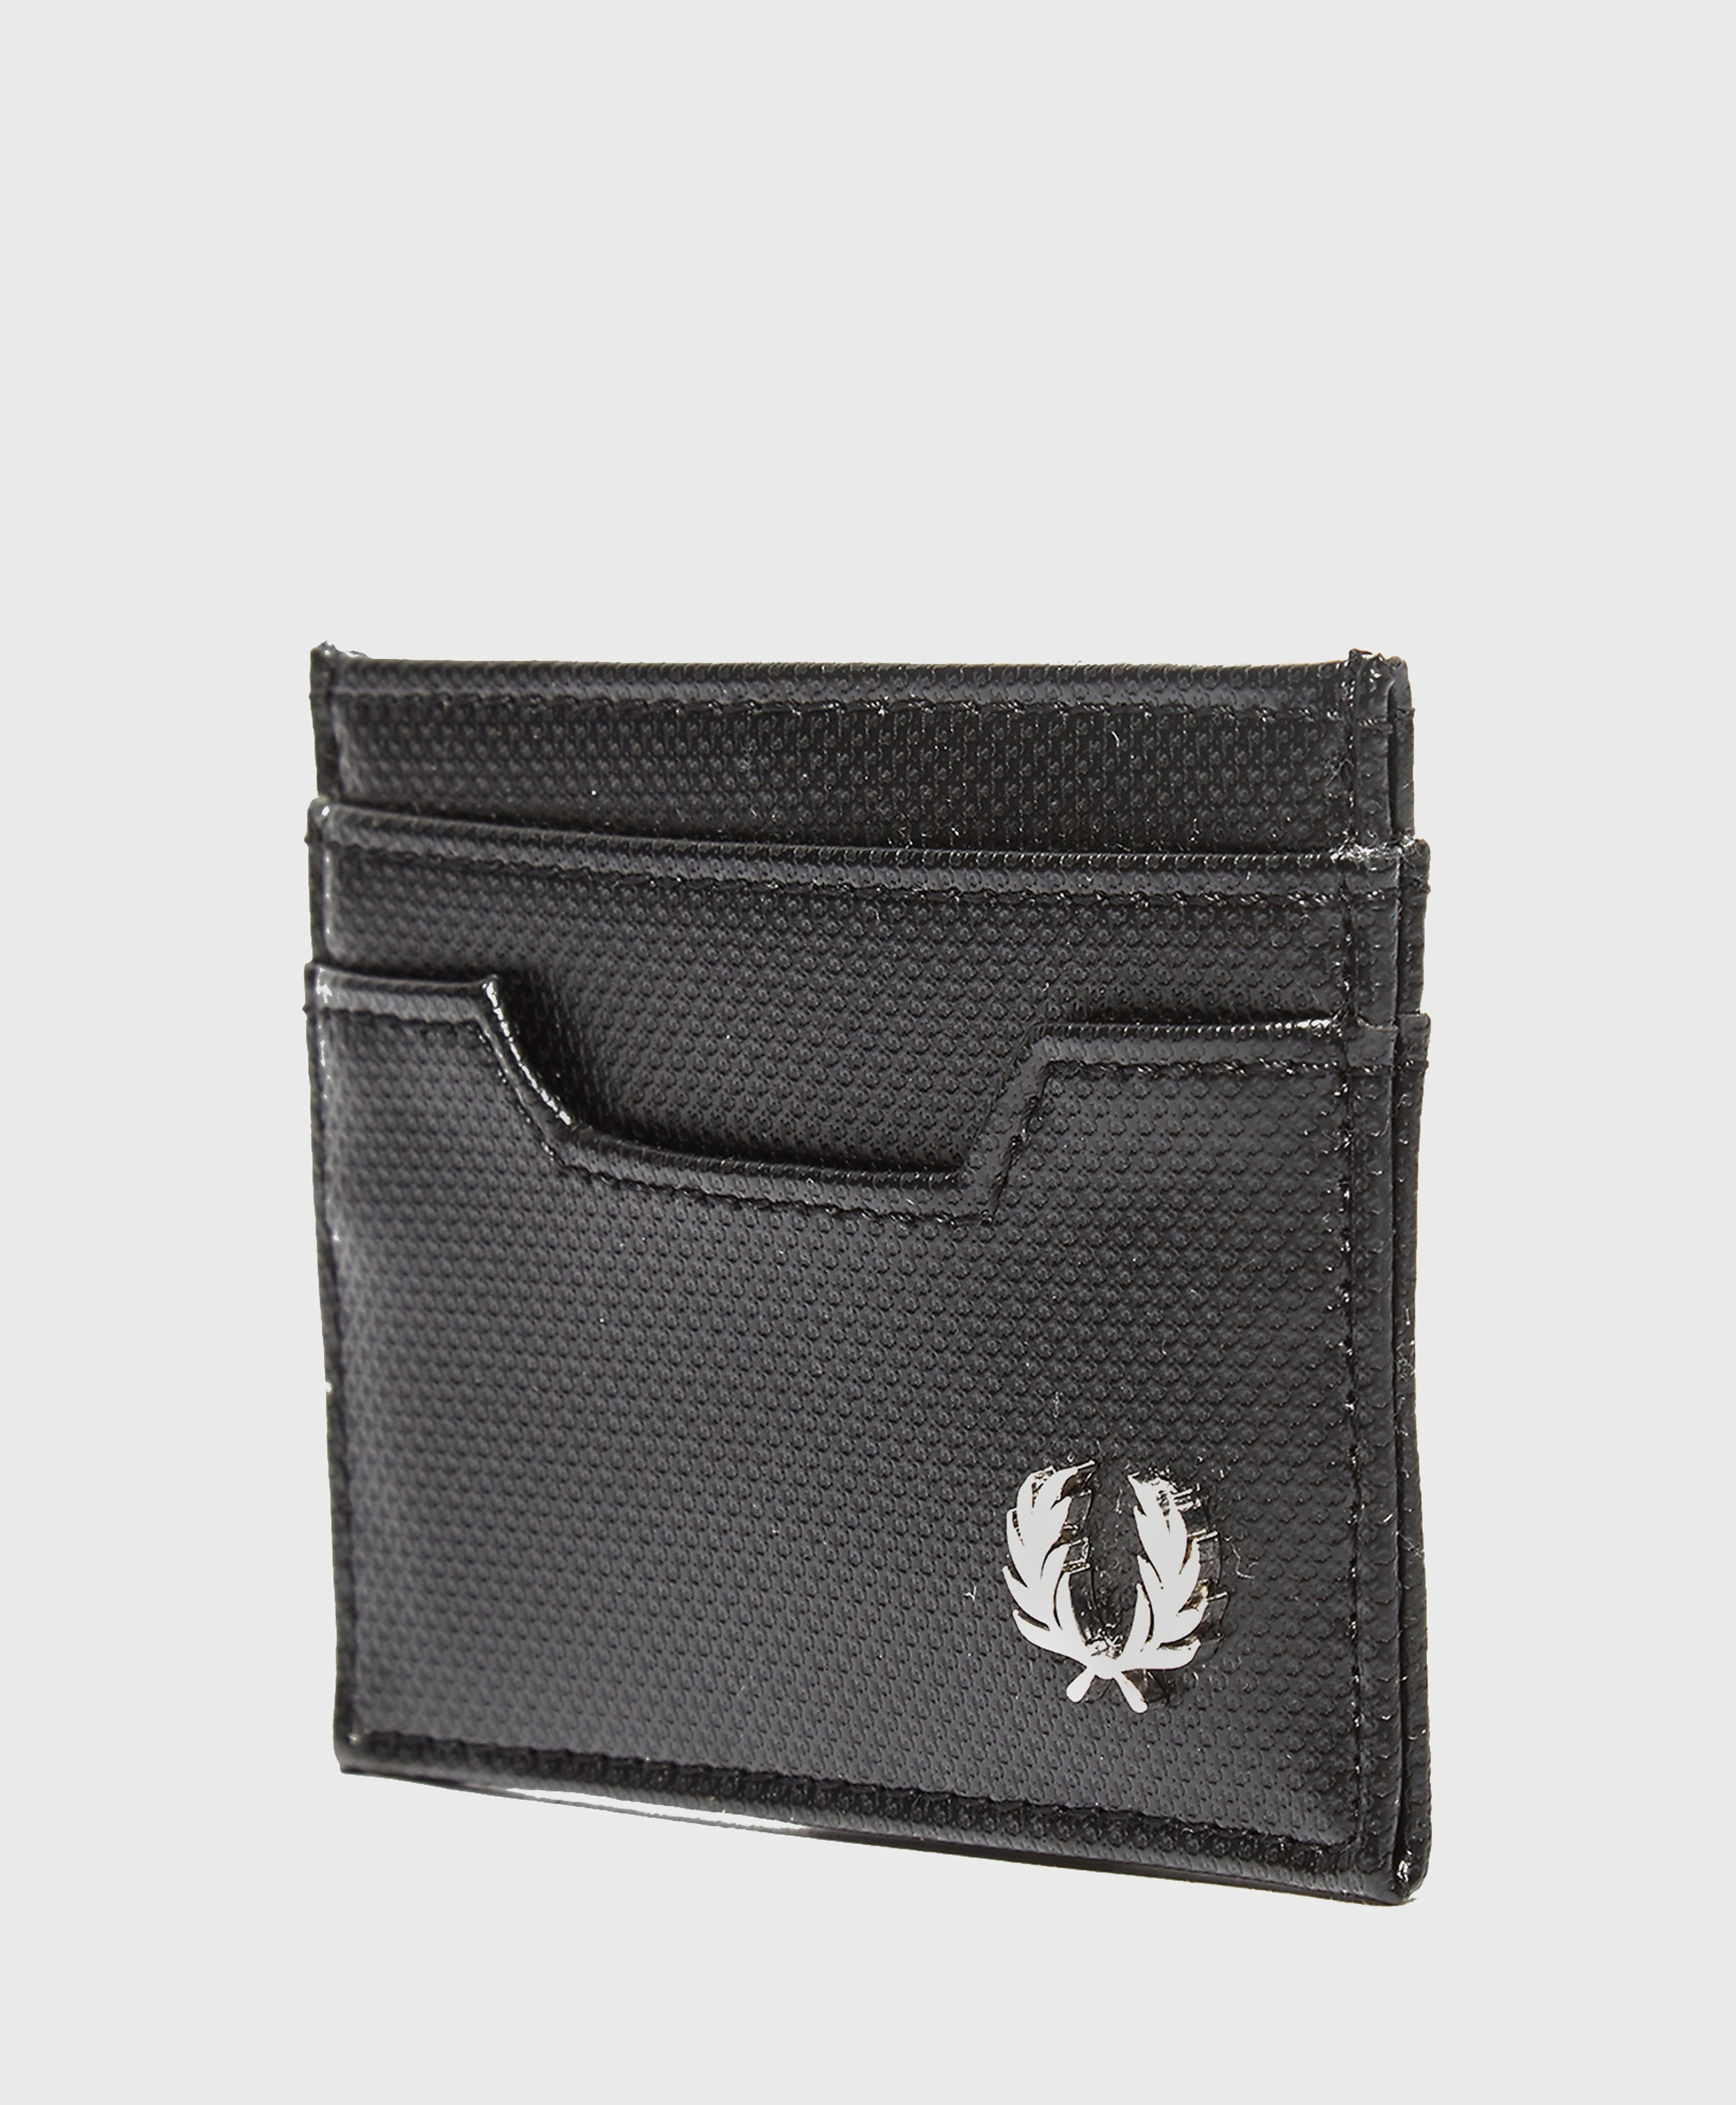 Fred Perry Pique Card Holder